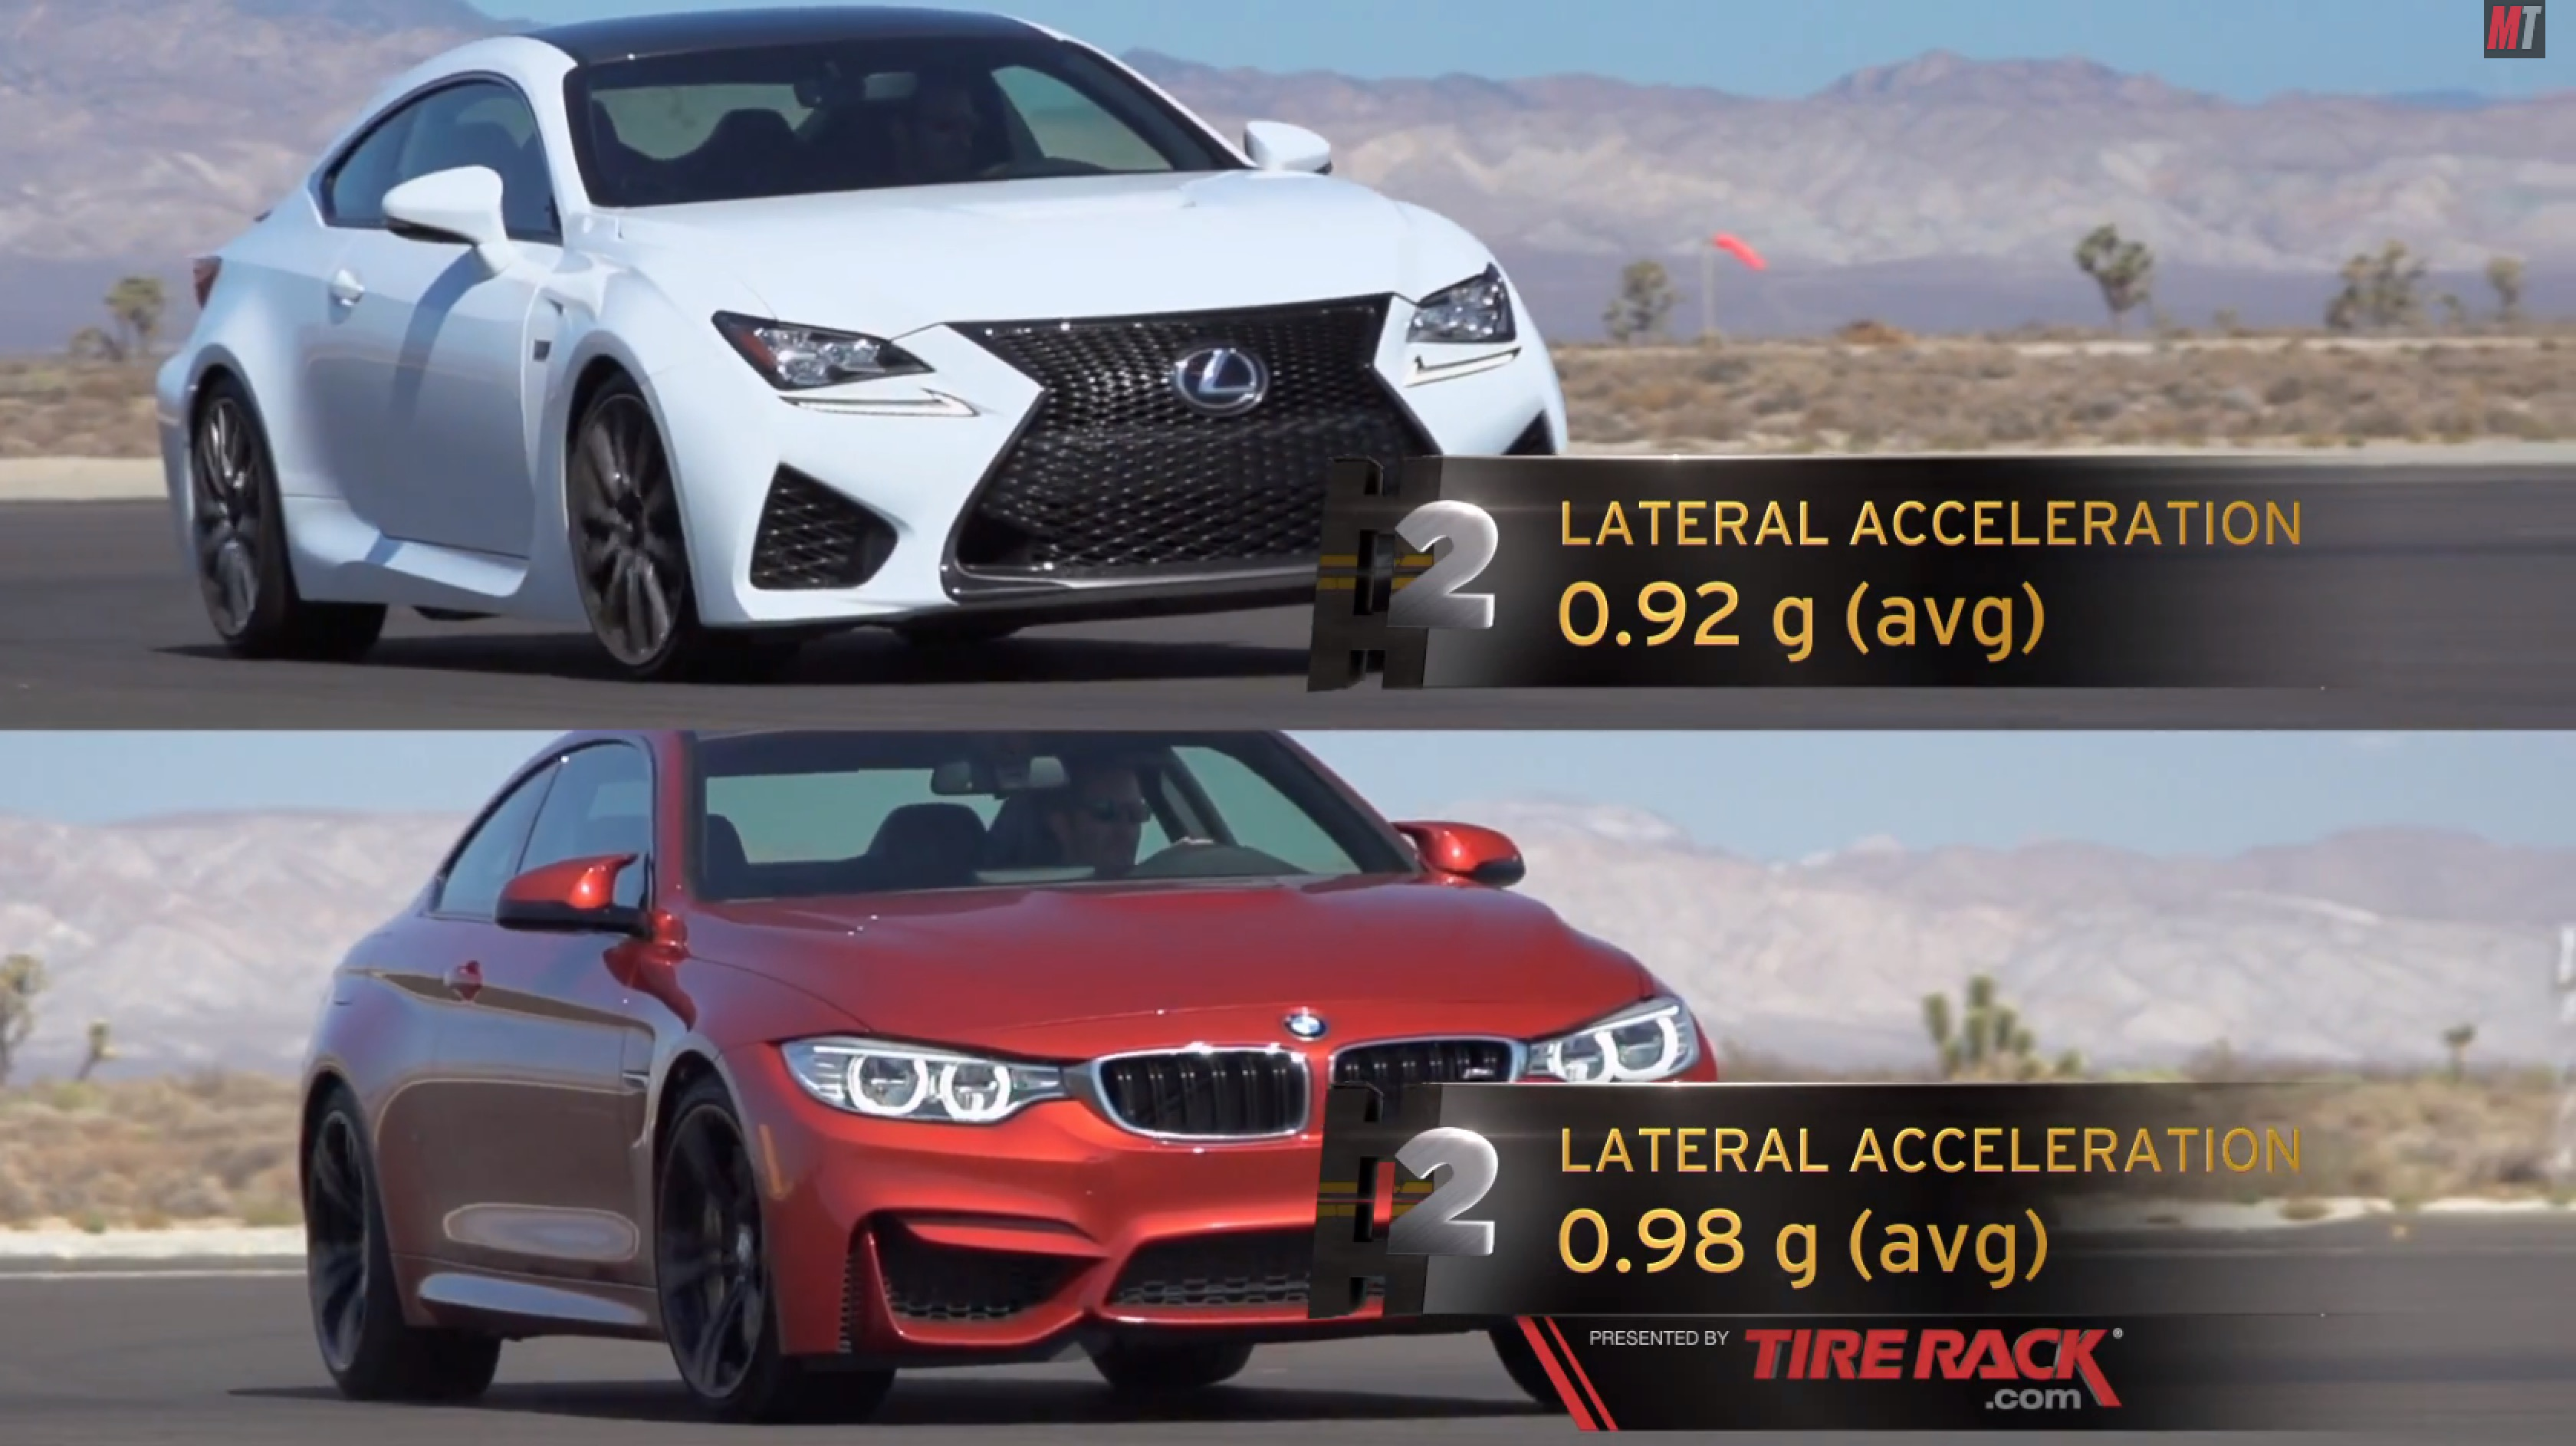 2015 BMW M4 vs. 2015 Lexus RC F – MotorTrend Head 2 Head